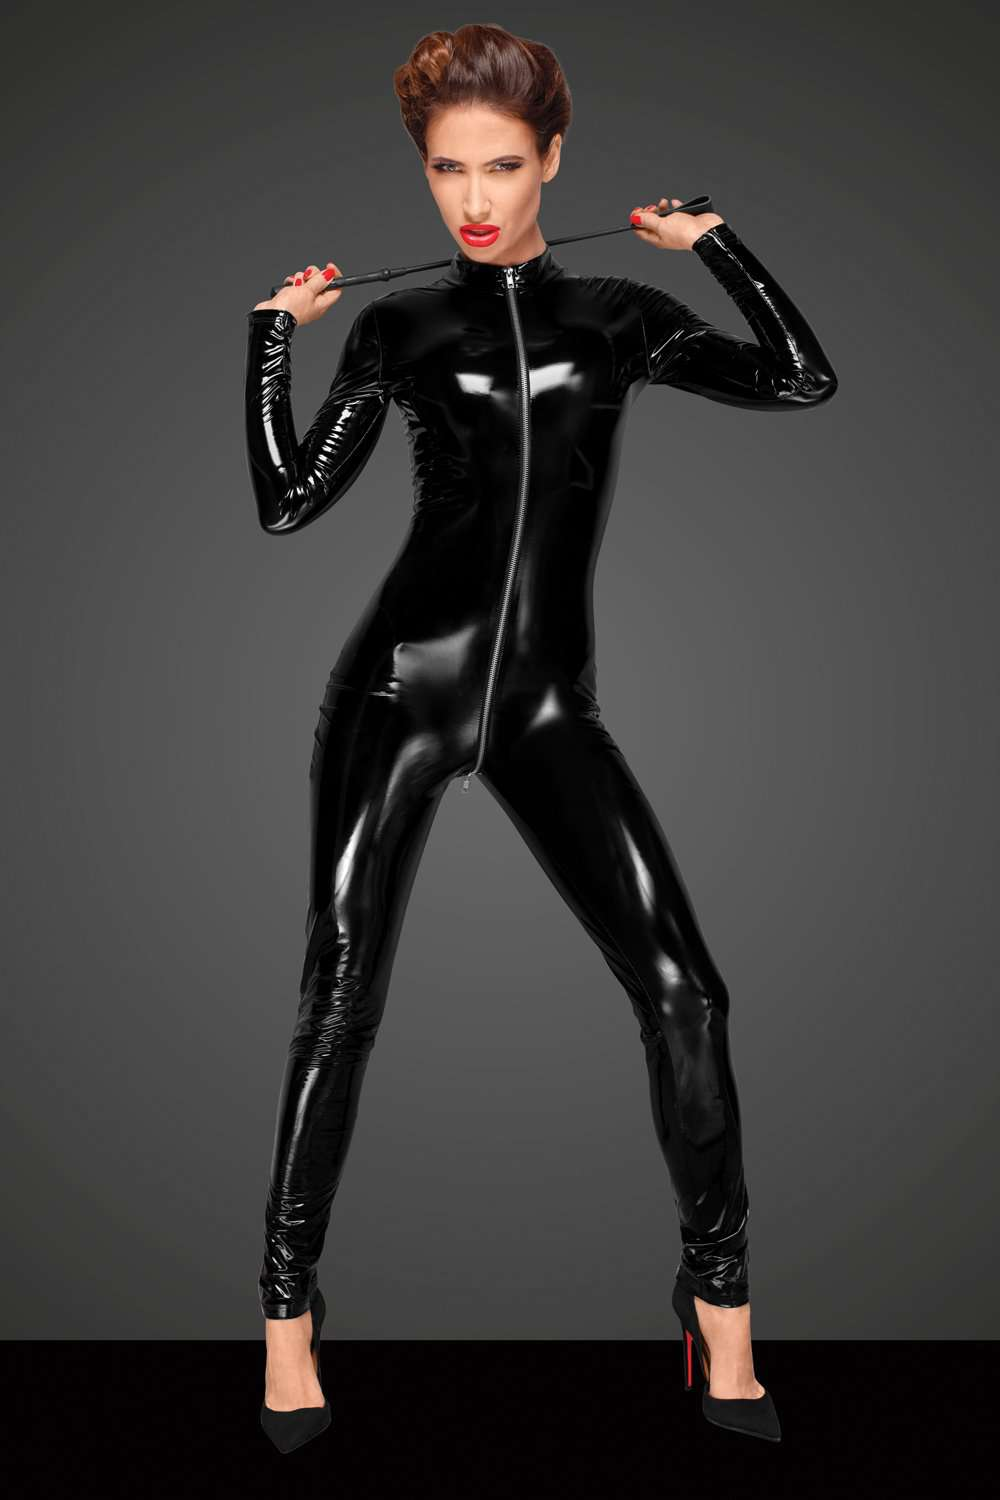 Noir Handmade Catsuit With 3-Way Zip